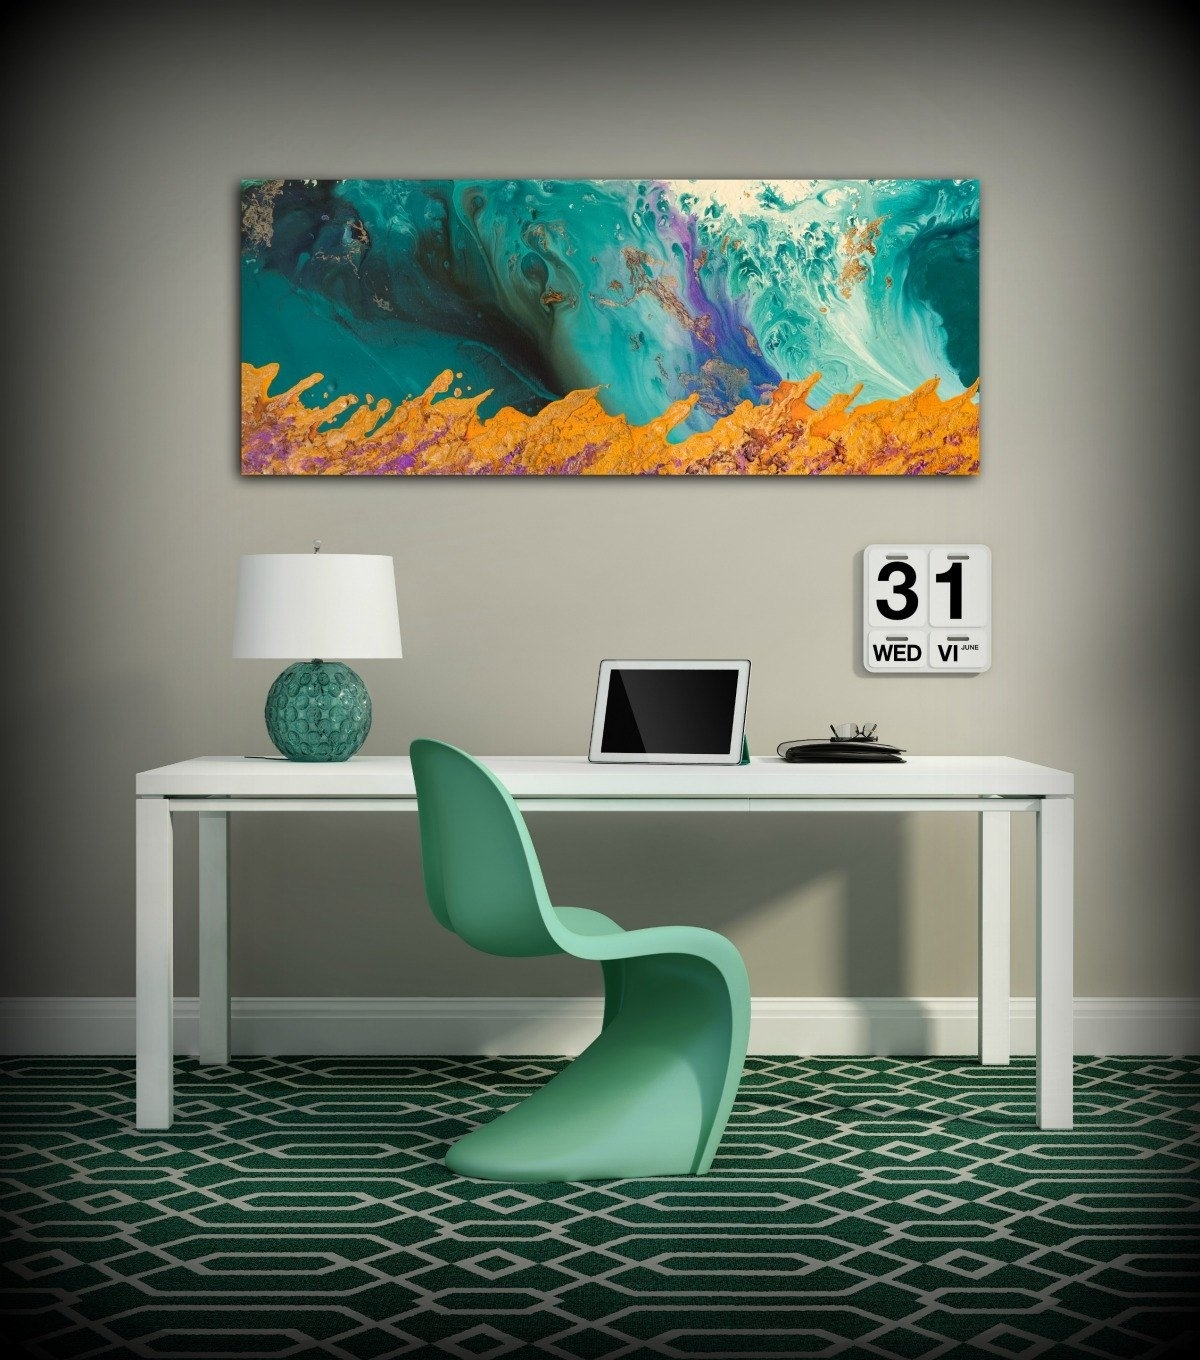 Canvas Print Wall Decor Large Abstract Wall Art Teal And Orange Within Most Up To Date Oversized Teal Canvas Wall Art (View 7 of 20)